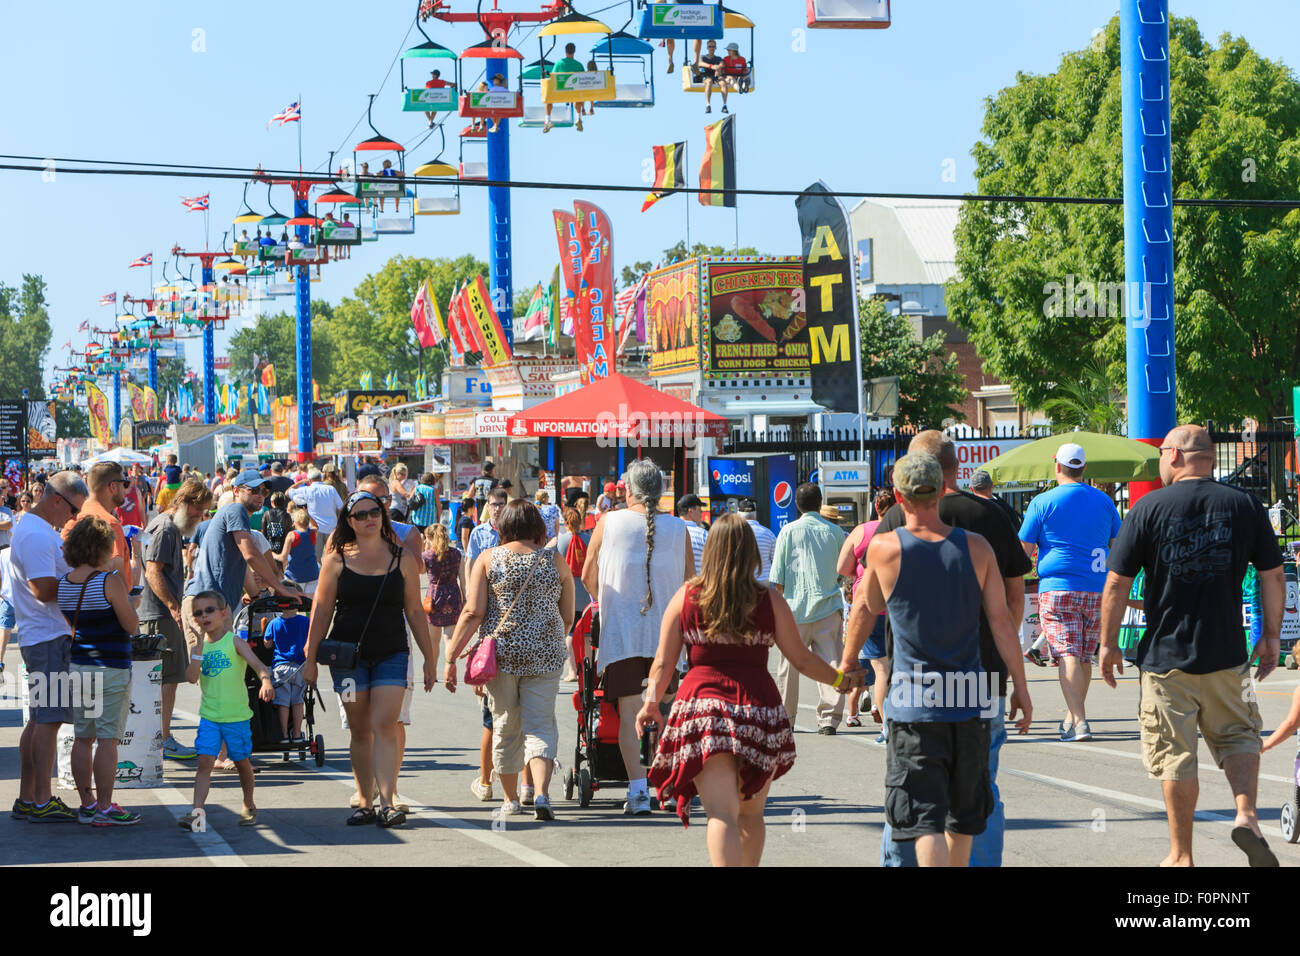 A large crowd walks on the midway at the Ohio State Fair in Columbus, Ohio. - Stock Image